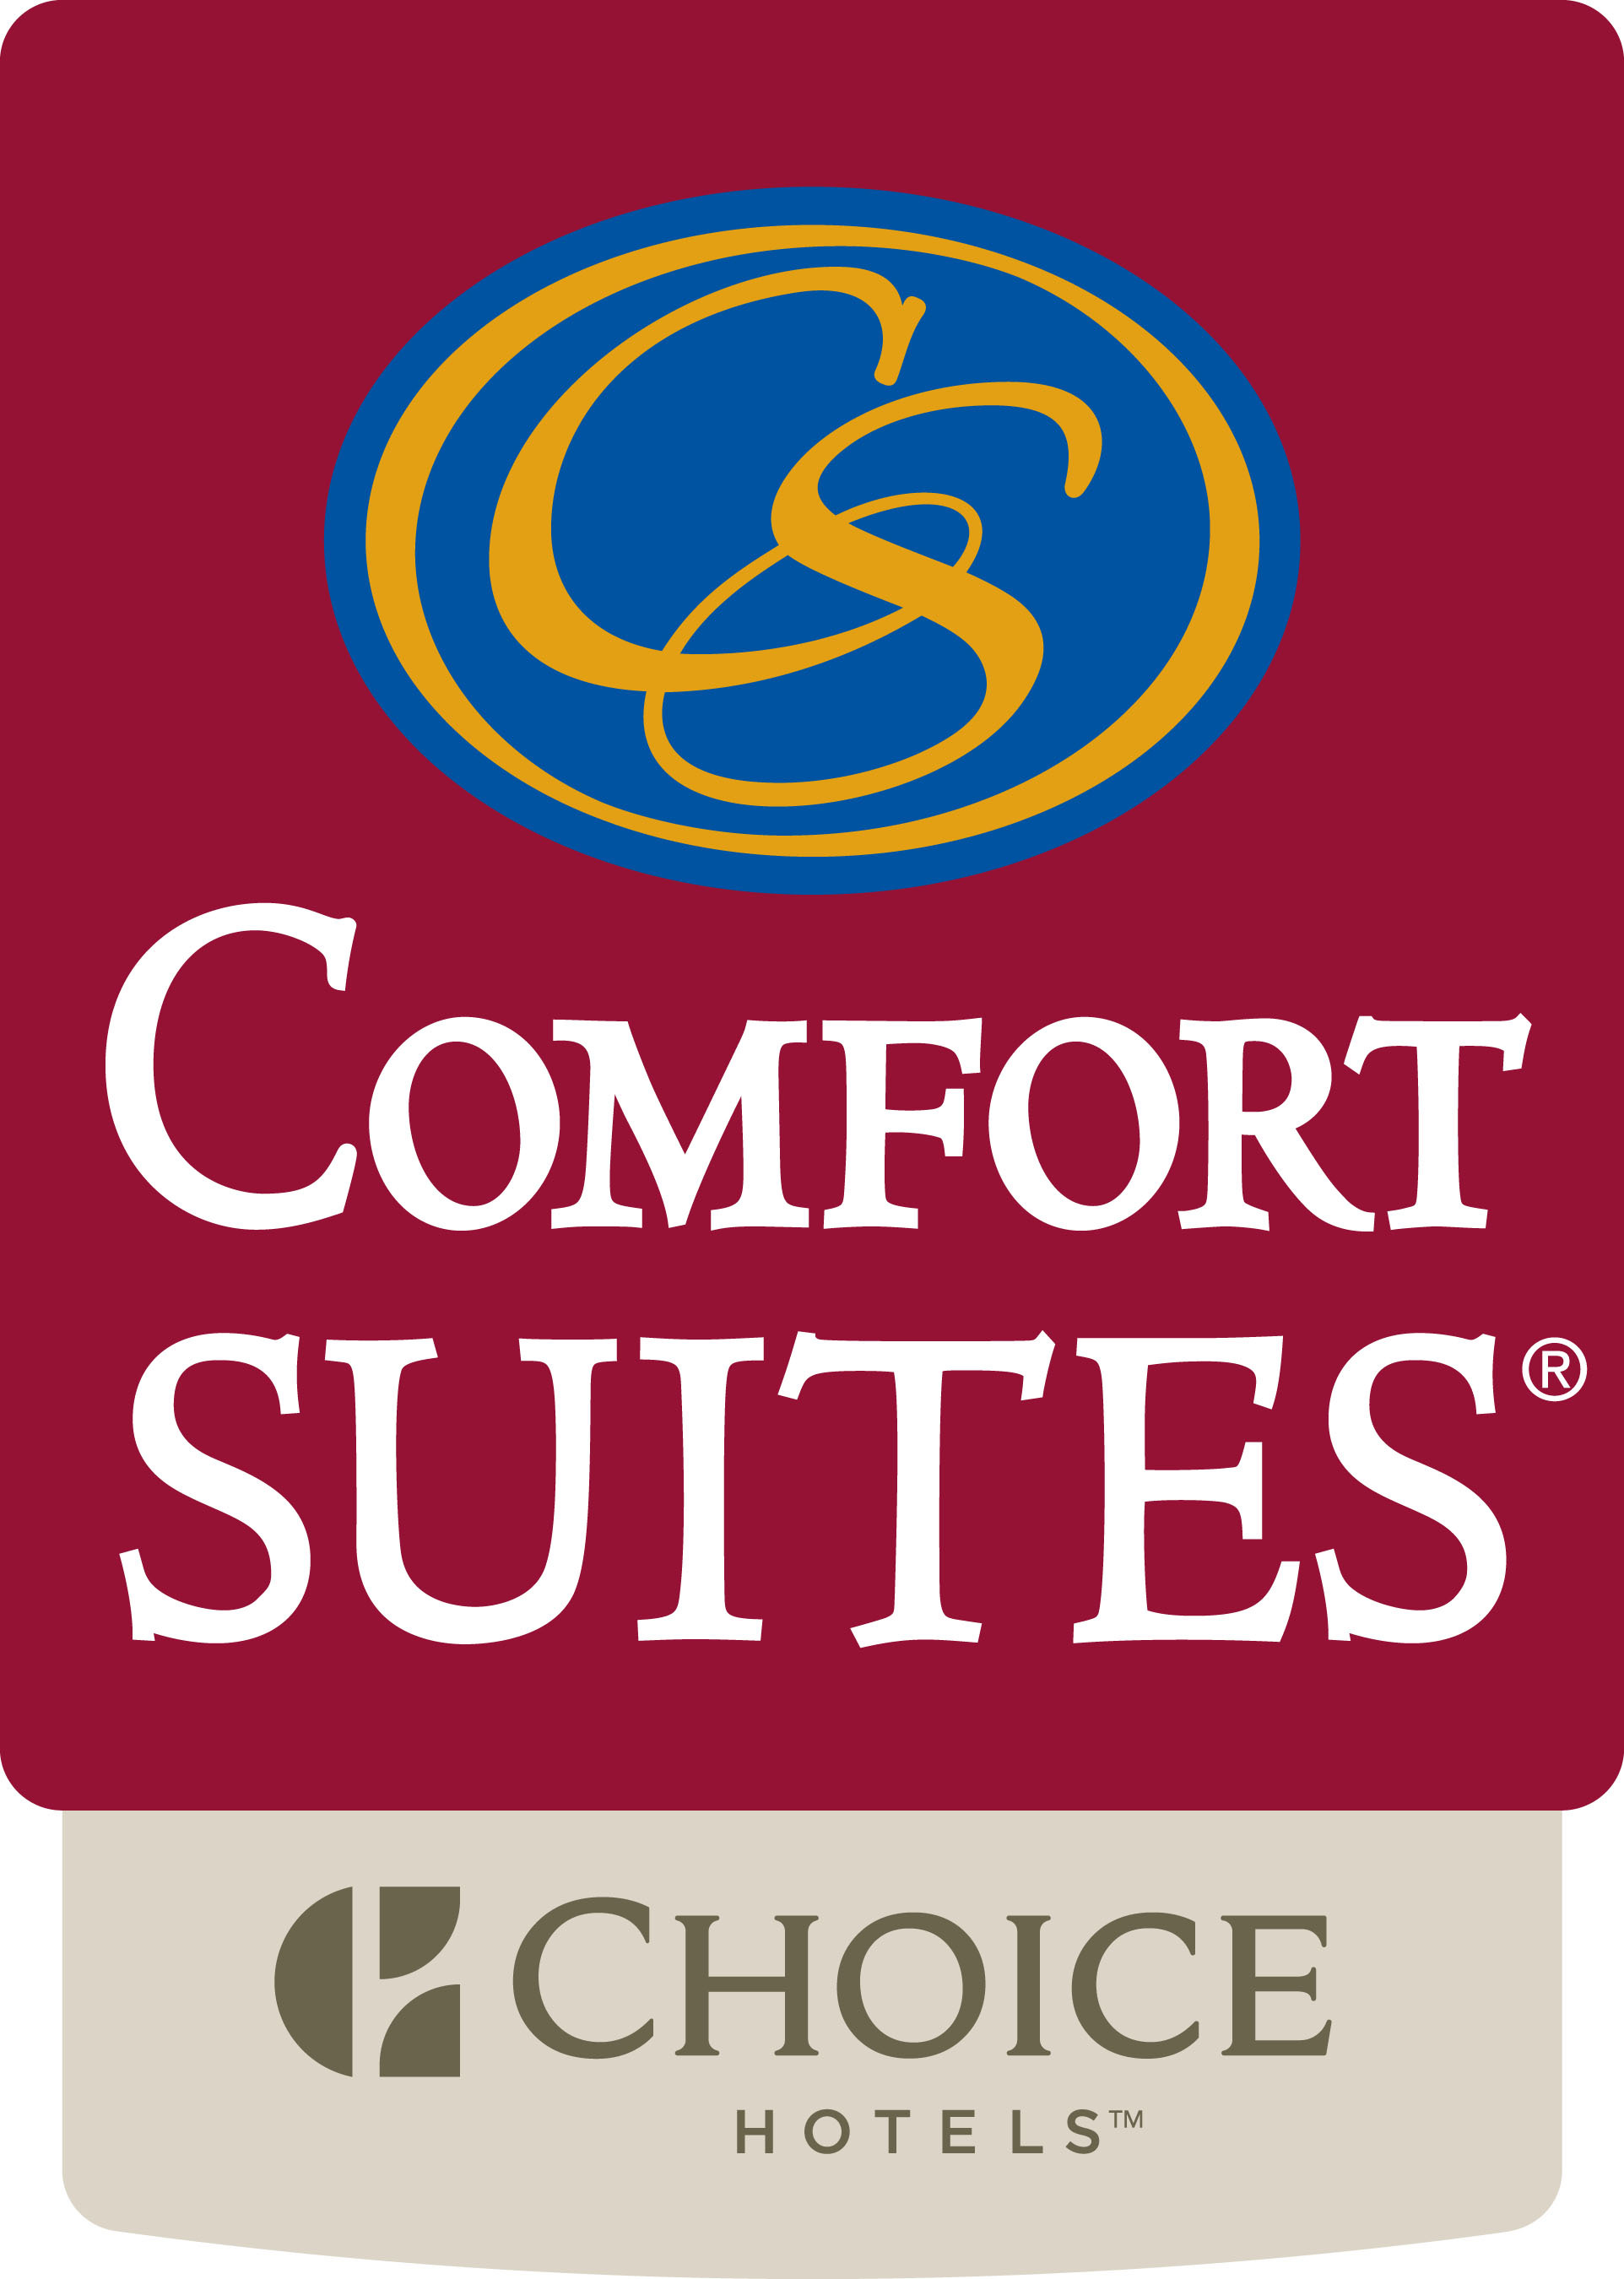 on comforter comfortsuitesberlinoh id lodging media the comfort facebook suites berlin home center conference hotel ohio square